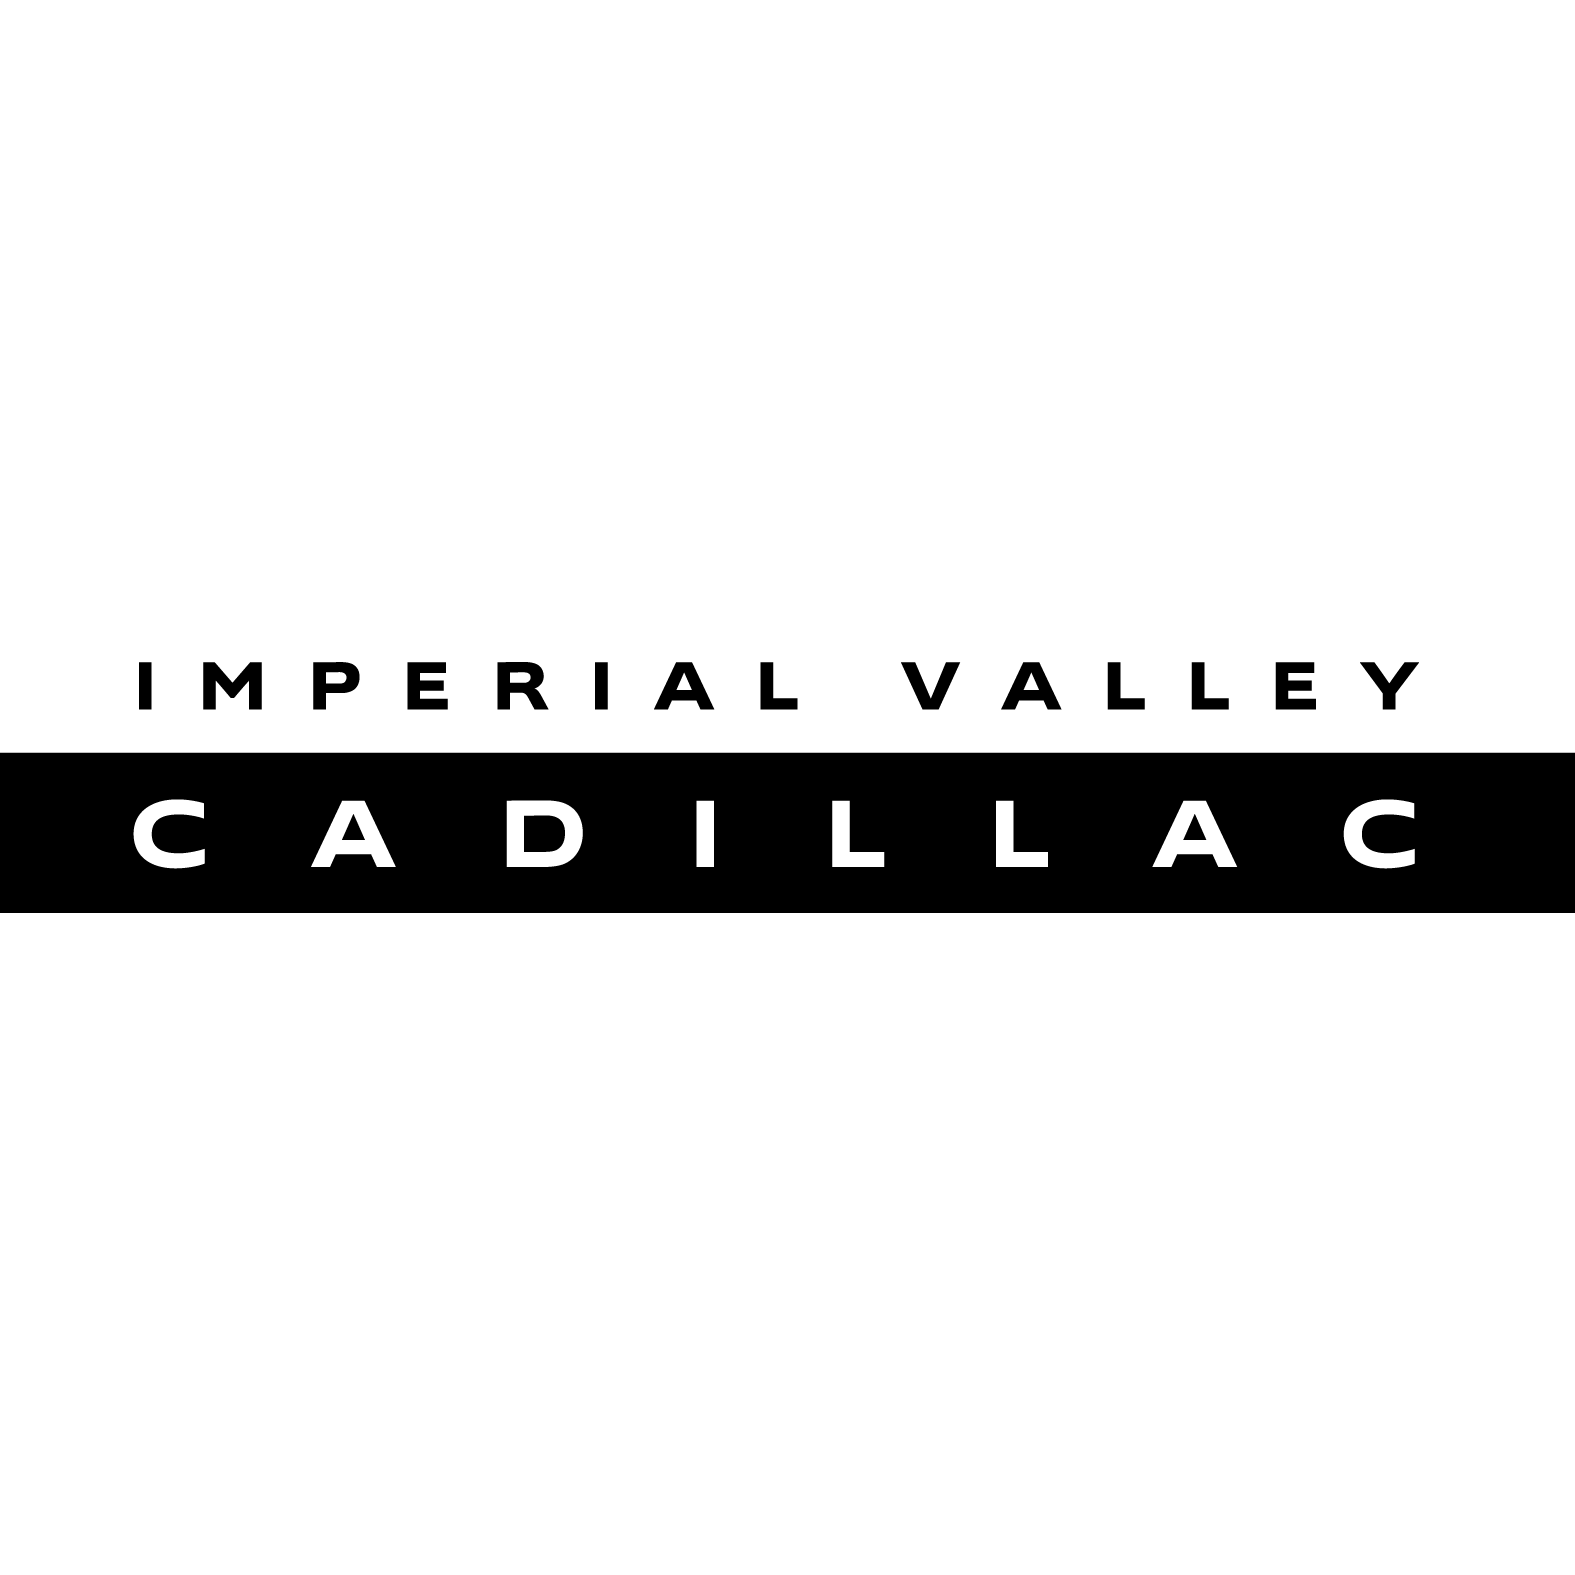 Imperial Valley Cadillac